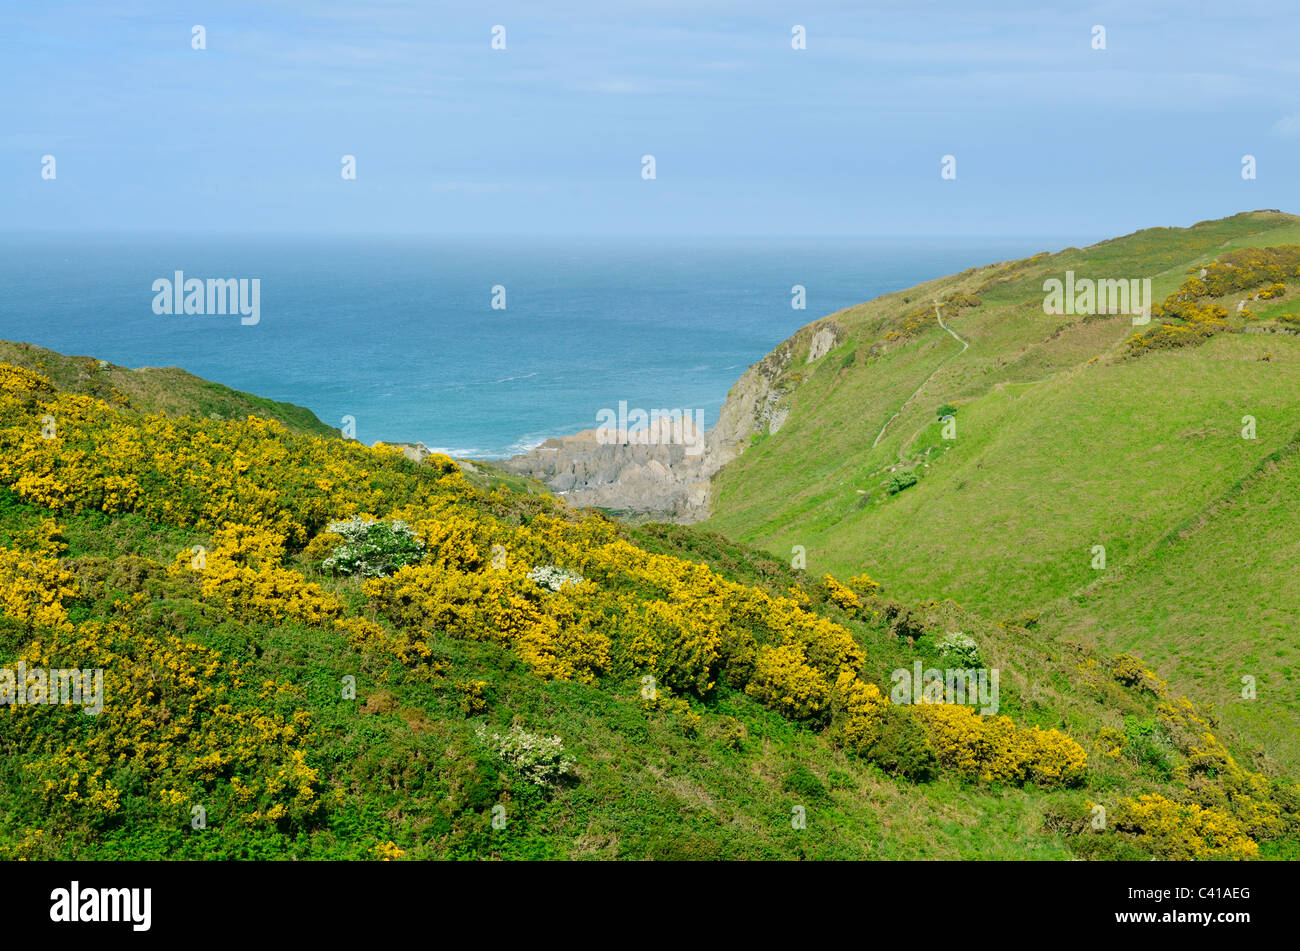 Gorse flowering on the hillside on the North Devon coast near Bull Point. Mortehoe, Devon, England, United Kingdom. - Stock Image